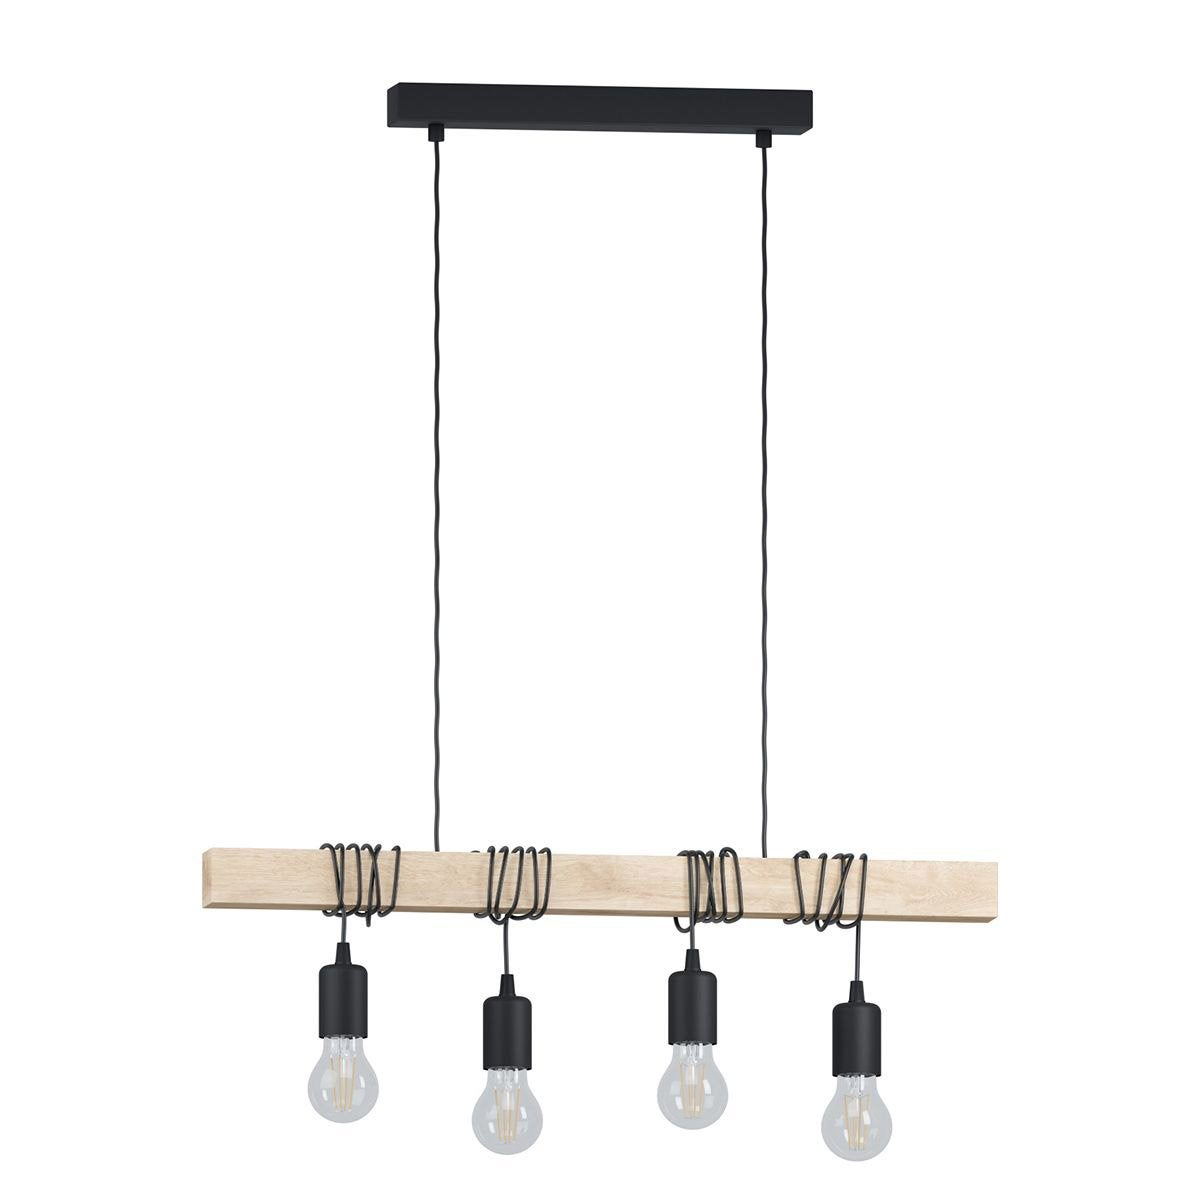 Suspension e27 design townshend bois noir 4 x 60 w eglo for Suspension bois luminaire